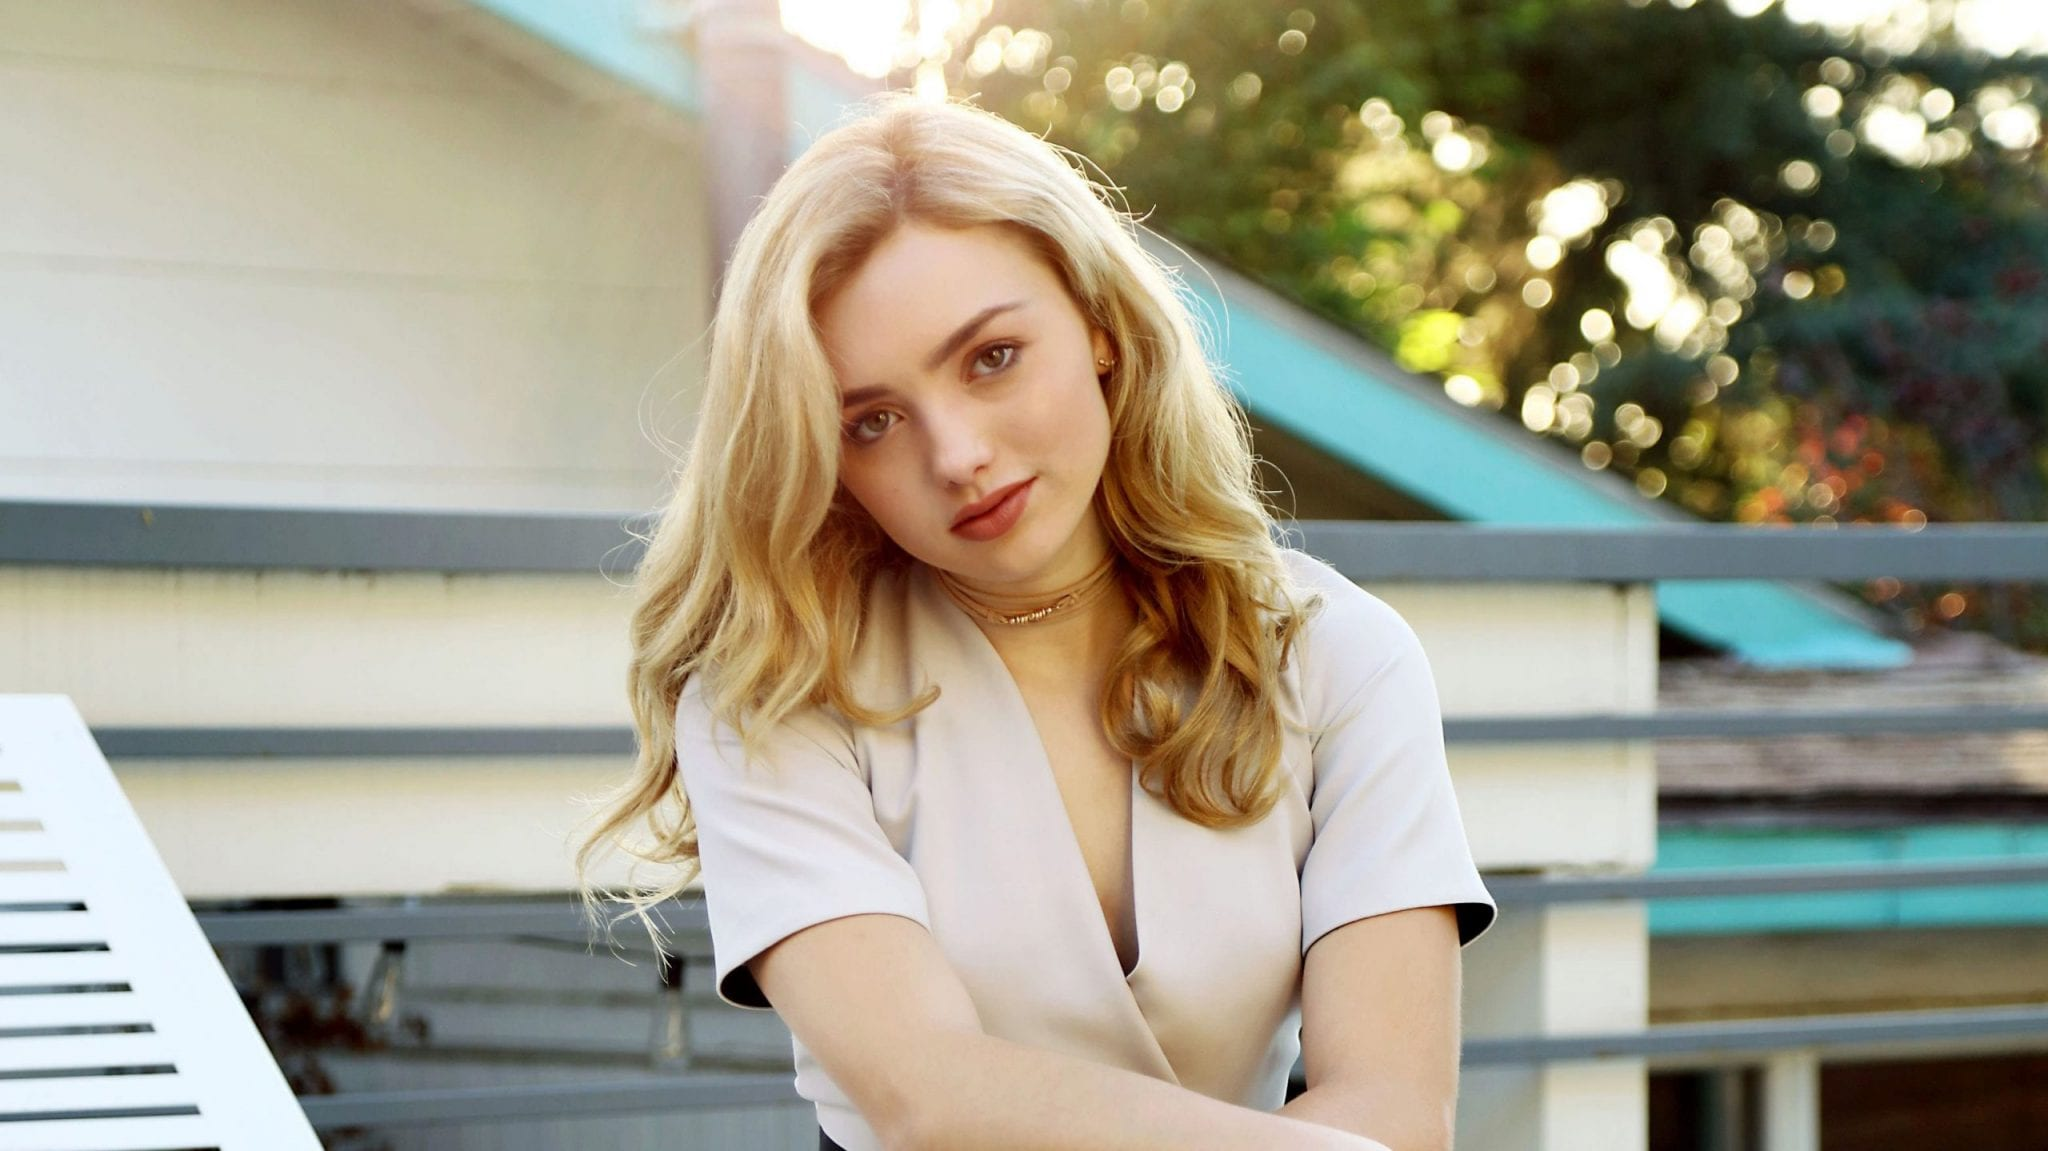 Who Is Peyton List Dating In 2021?